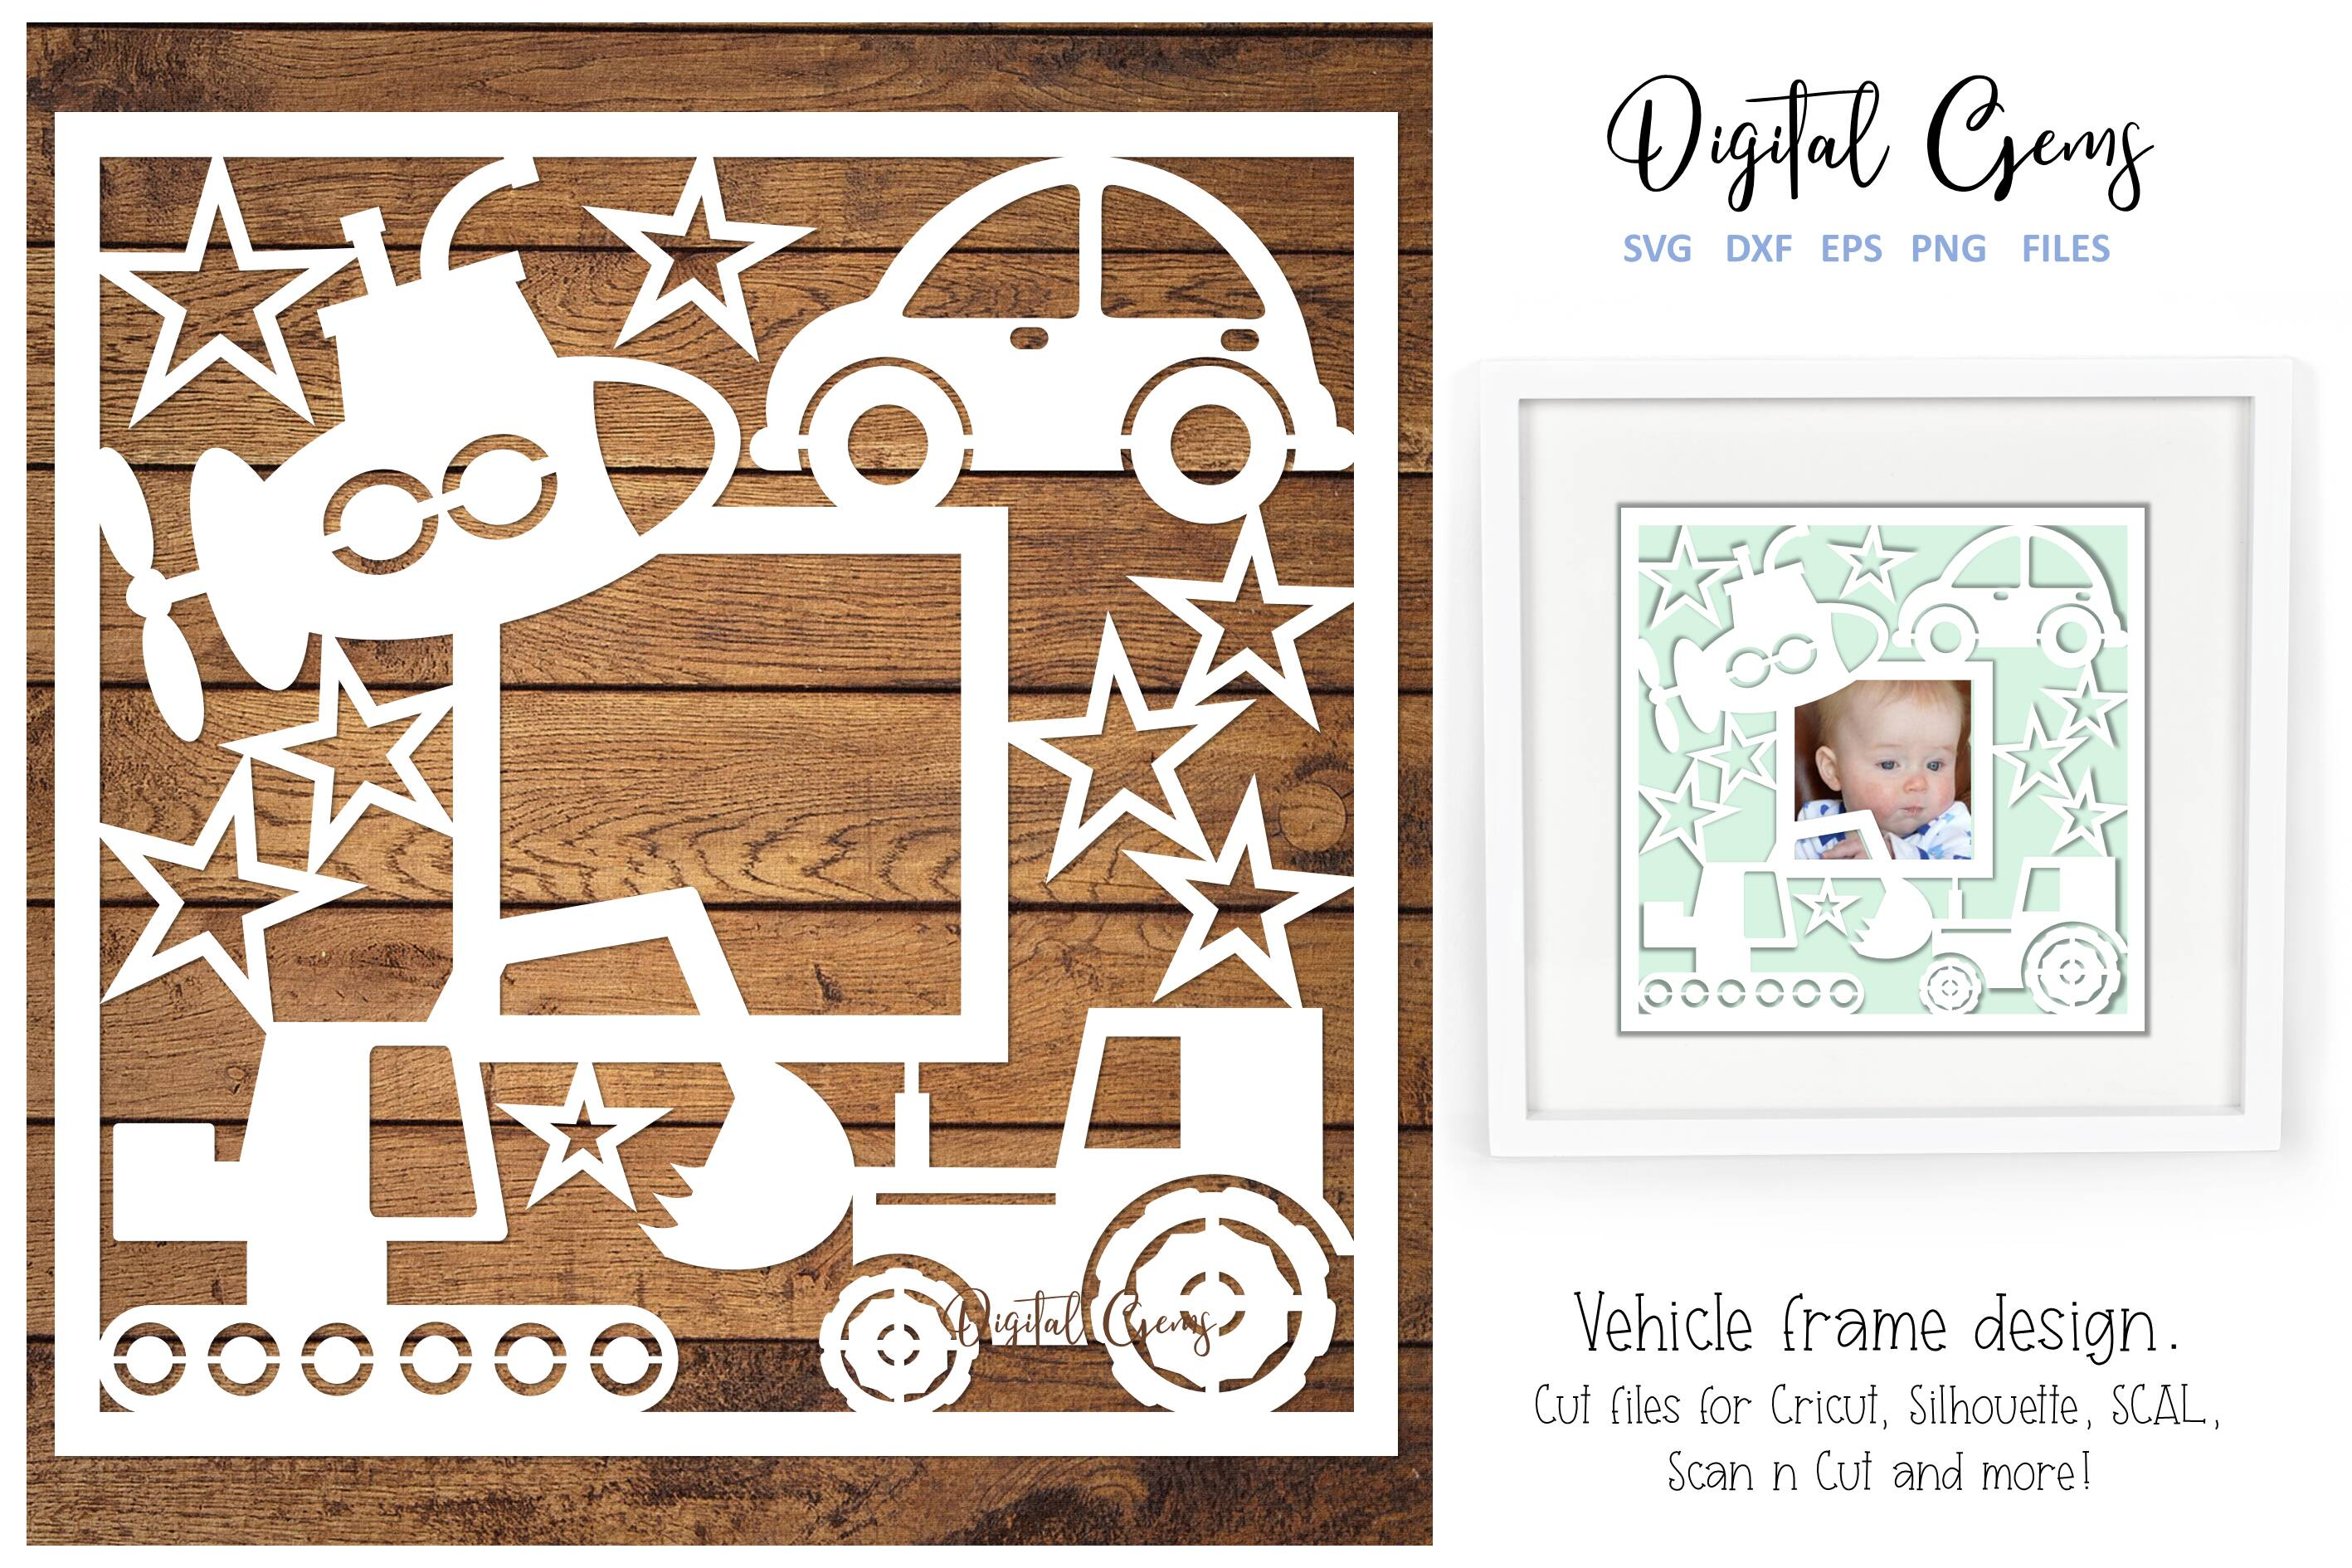 Download Free Vehicle Frame Design Graphic By Digital Gems Creative Fabrica for Cricut Explore, Silhouette and other cutting machines.